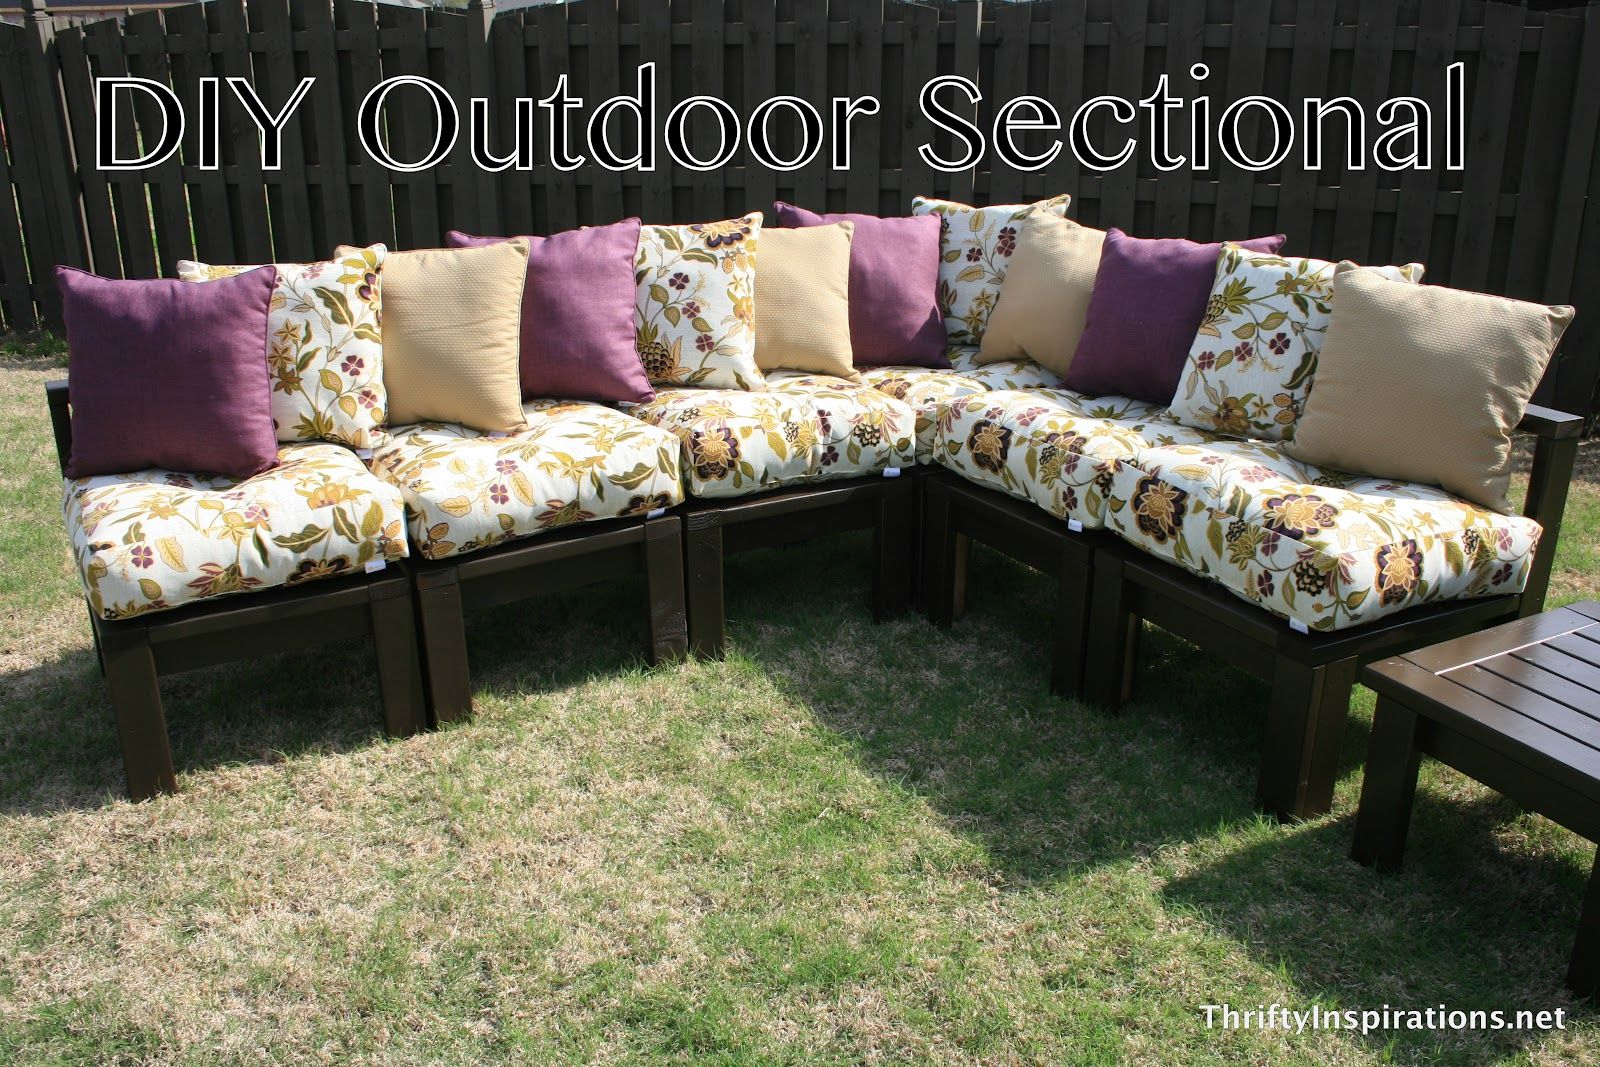 DIY Outdoor Sectional Outdoor sectional Diy patio and Patios